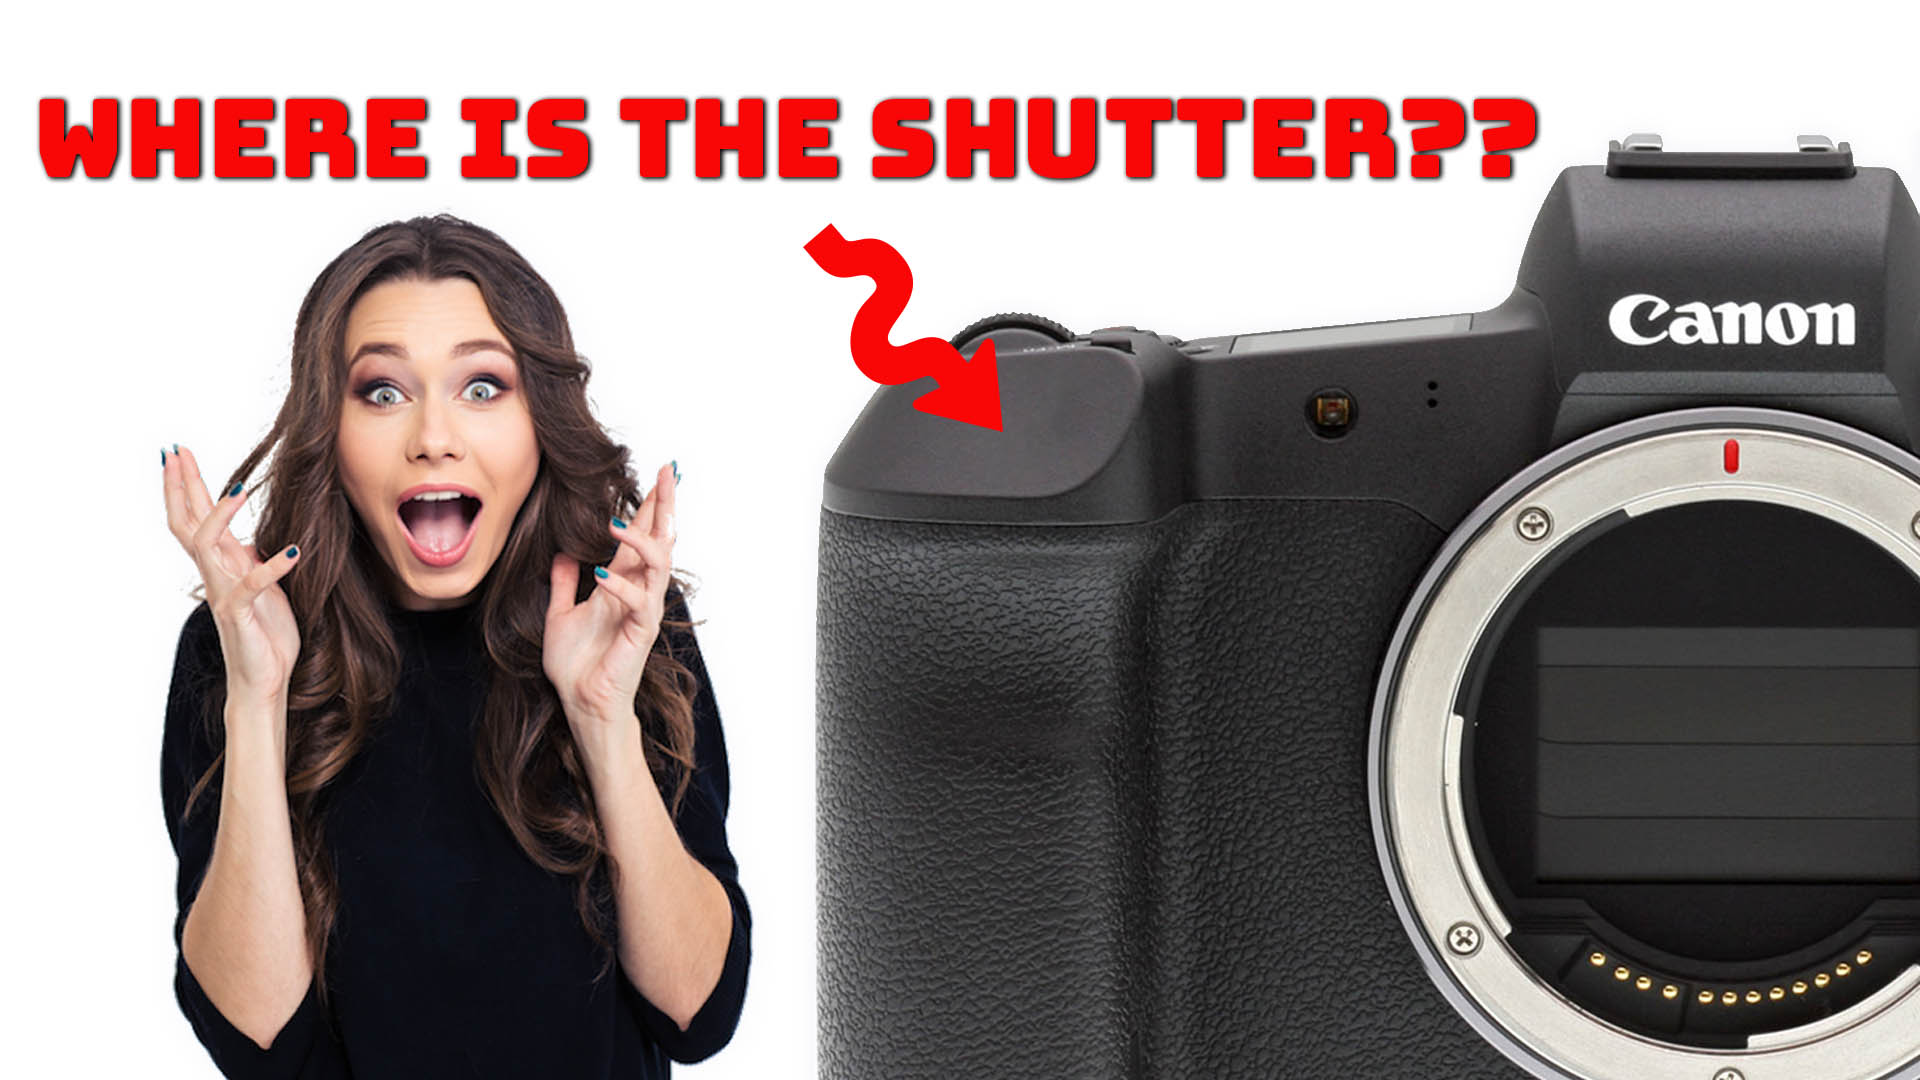 canon-patent-application-replacing-the-shutter-button